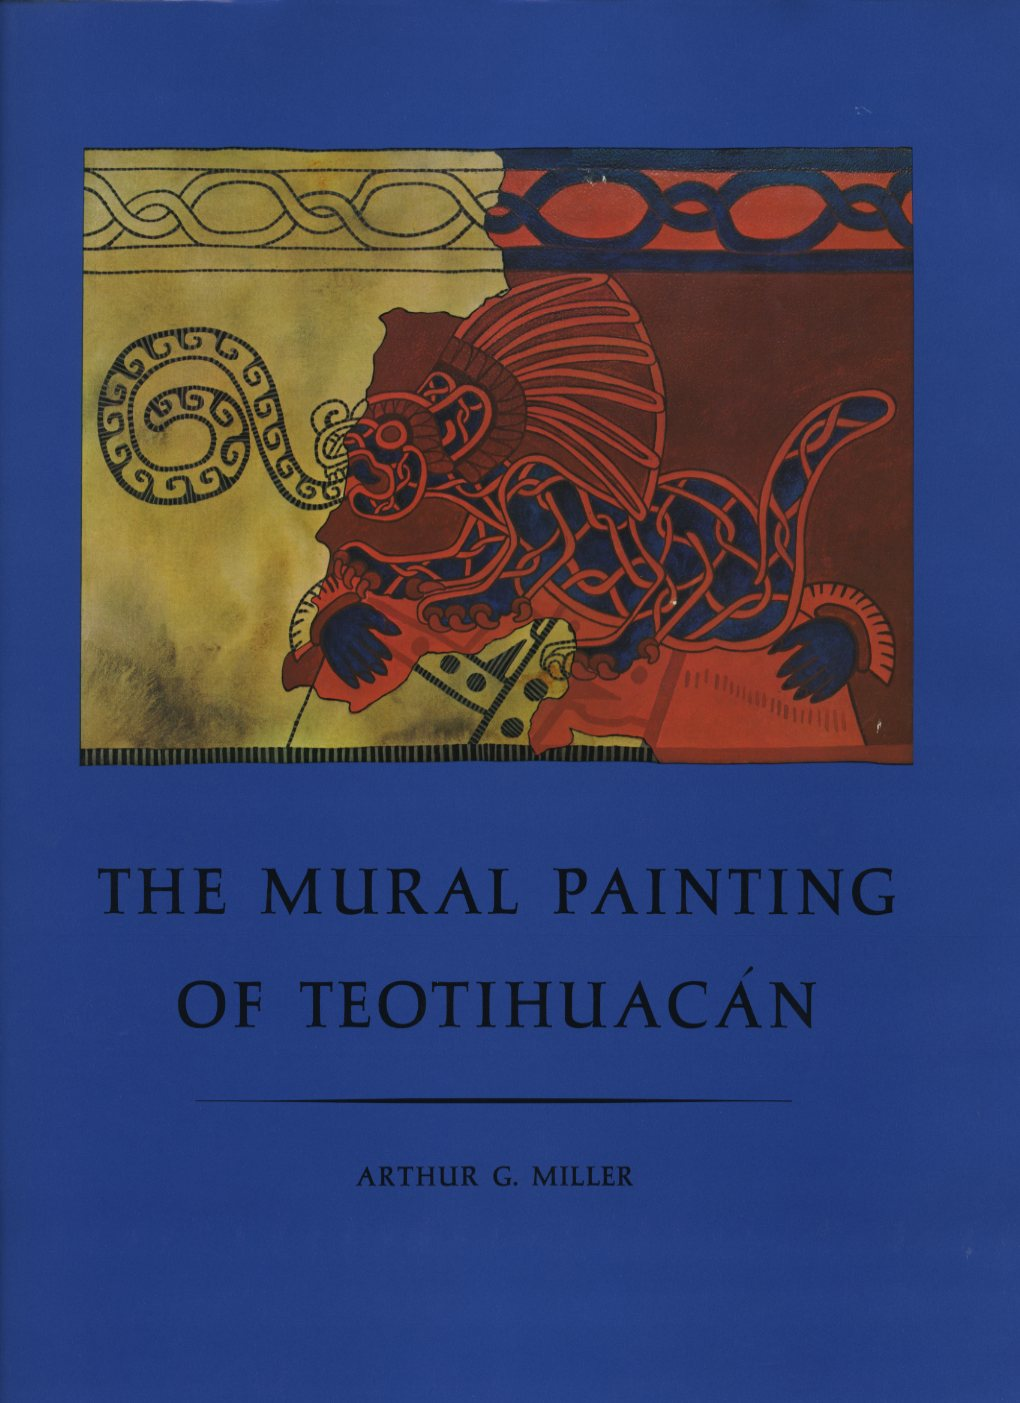 The Mural Painting of Teotihuacán